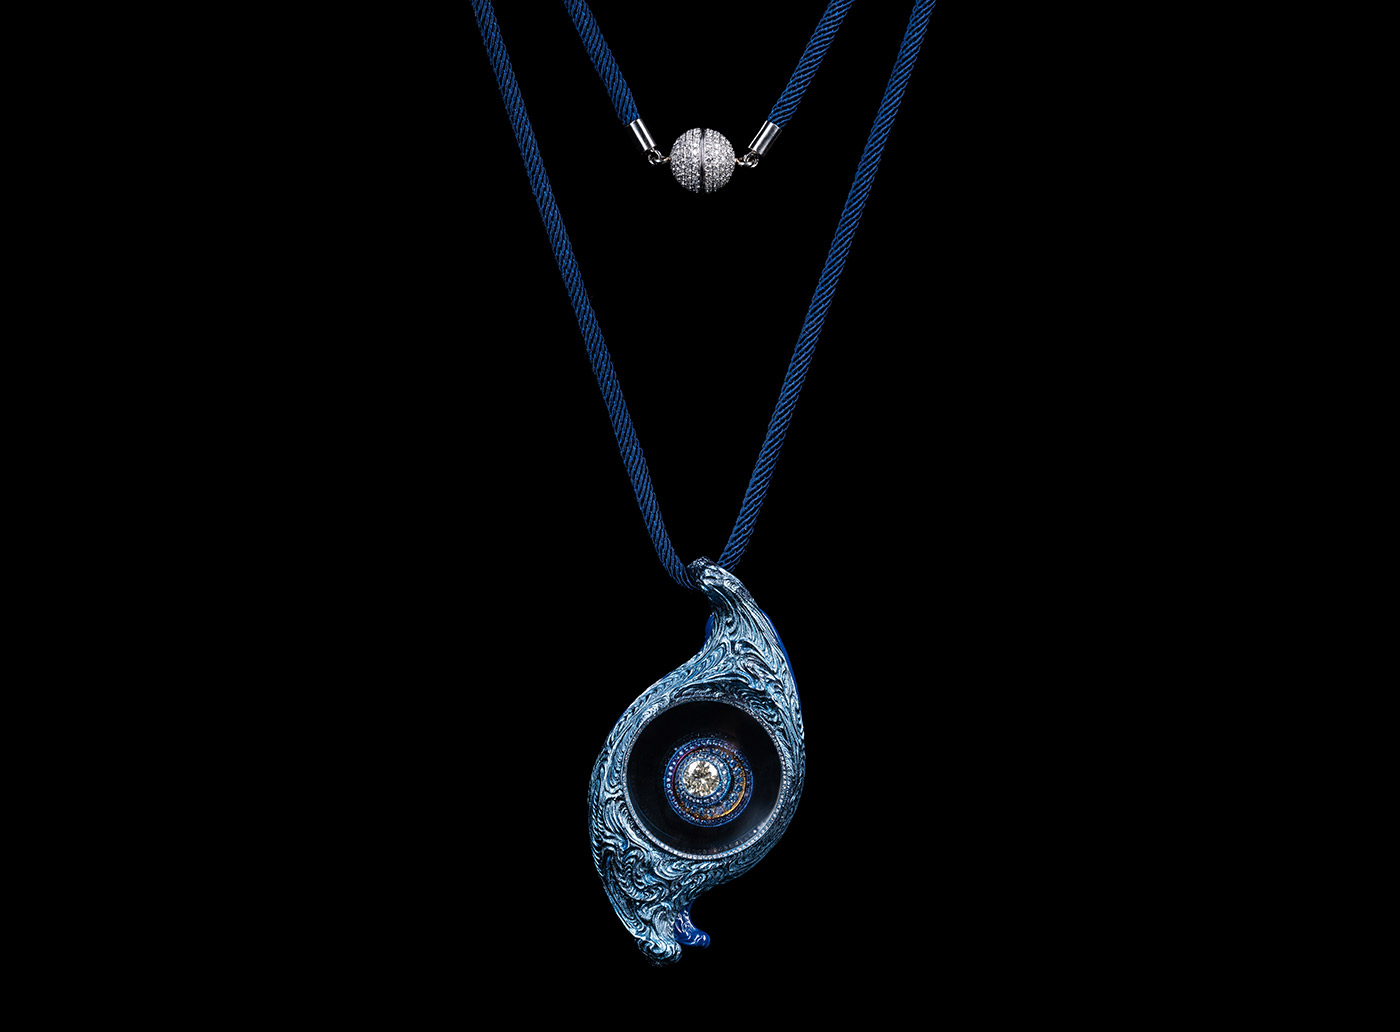 Wallace Chan 'Eye of Time' pendant with 1.06ct fancy yellow diamond, sapphire and diamond in 18K white gold, lens, titanium and Wallace Chan Porcelain